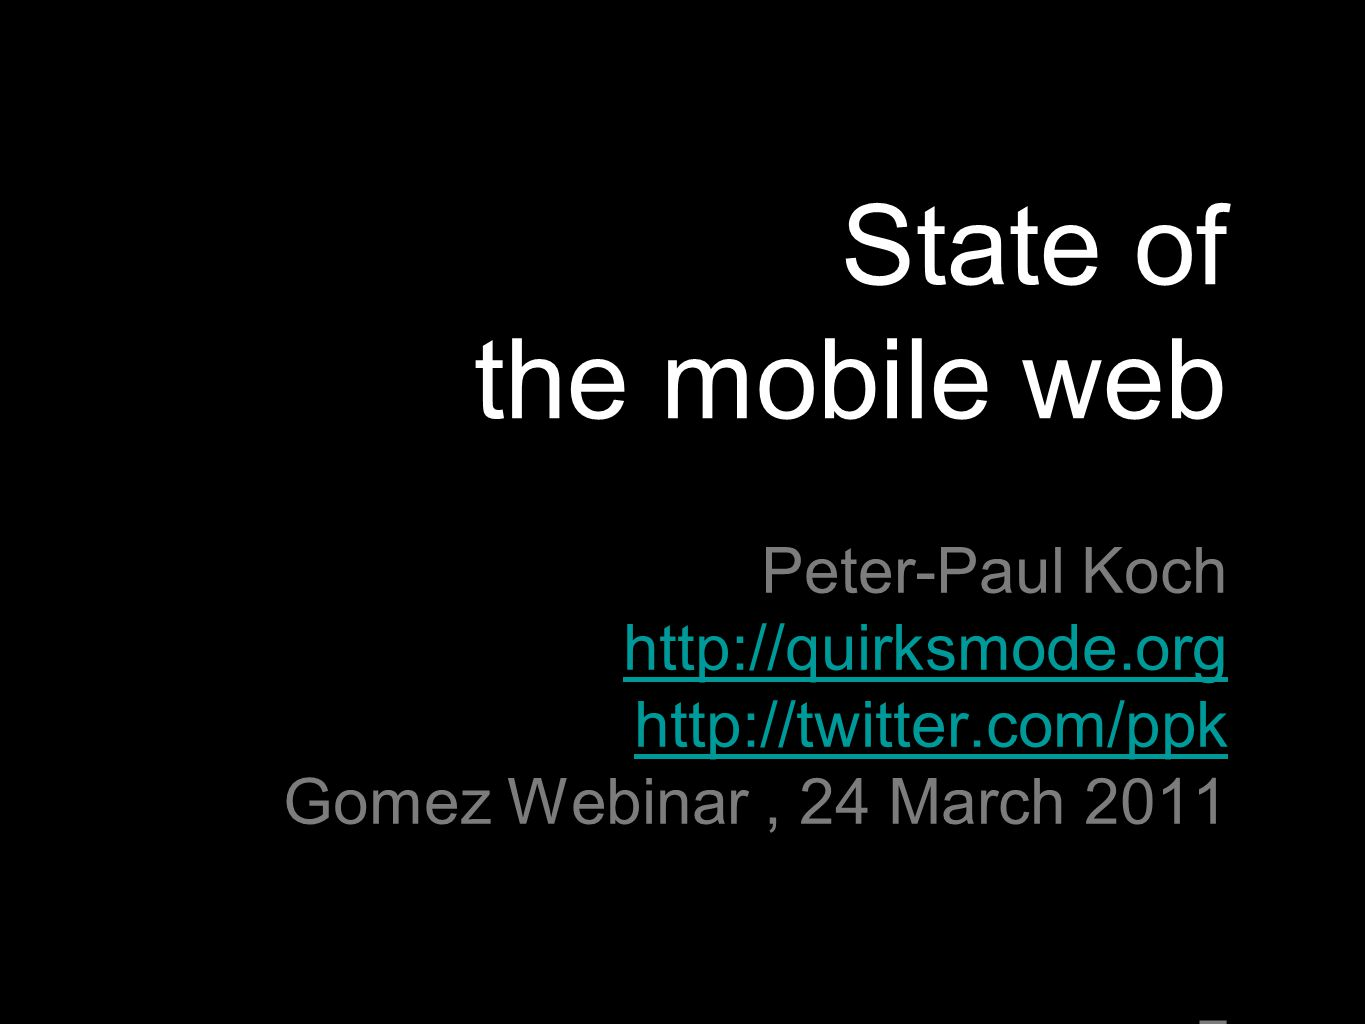 State of the mobile web Peter-Paul Koch http://quirksmode.org http://twitter.com/ppk Gomez Webinar, 24 March 2011 z